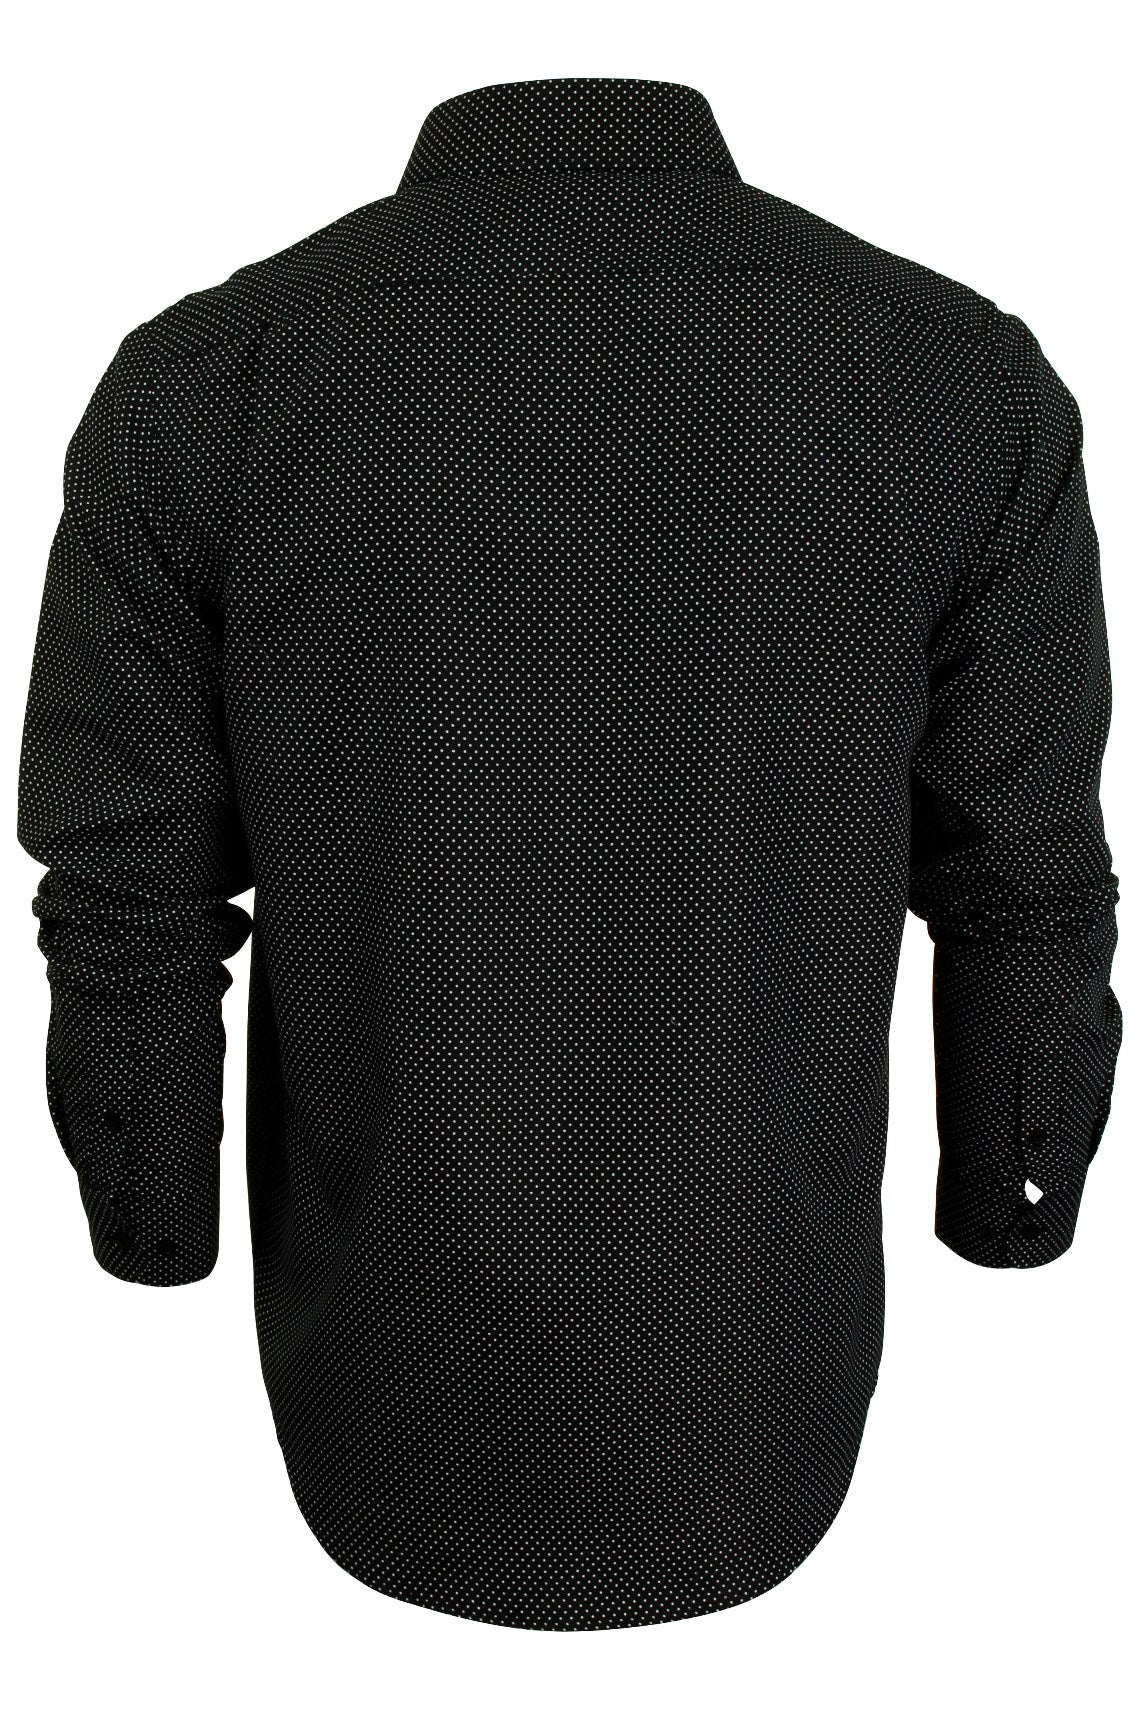 Mens Spotted Print Shirt by Process Black 'Cell' Long Sleeve Brave Soul_03_Msh-Pb475Cell_Jet Black